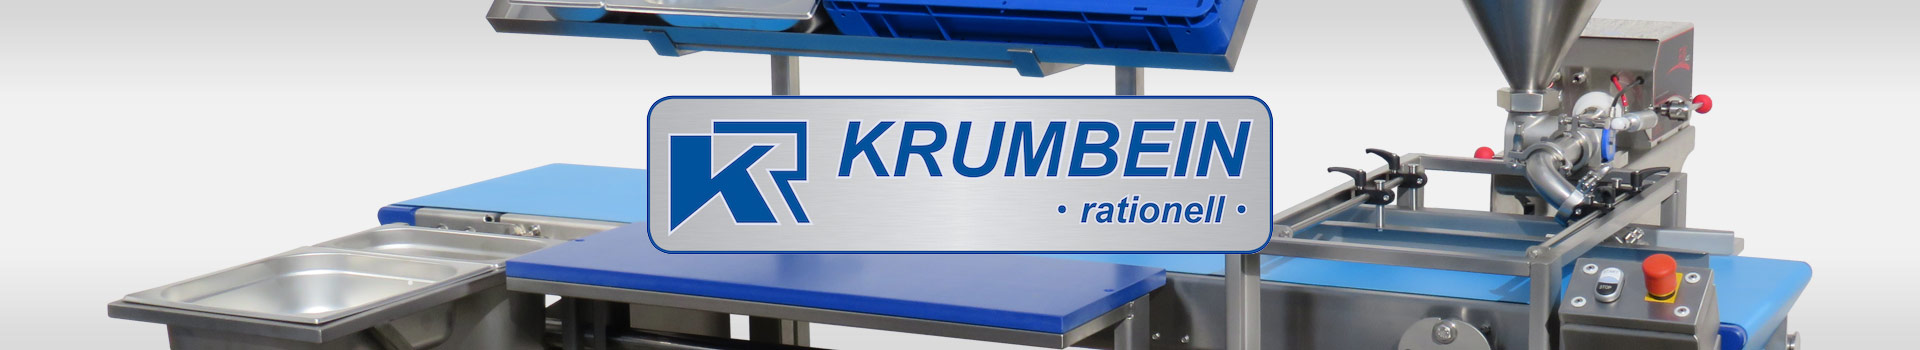 Krumbein rationell equipment